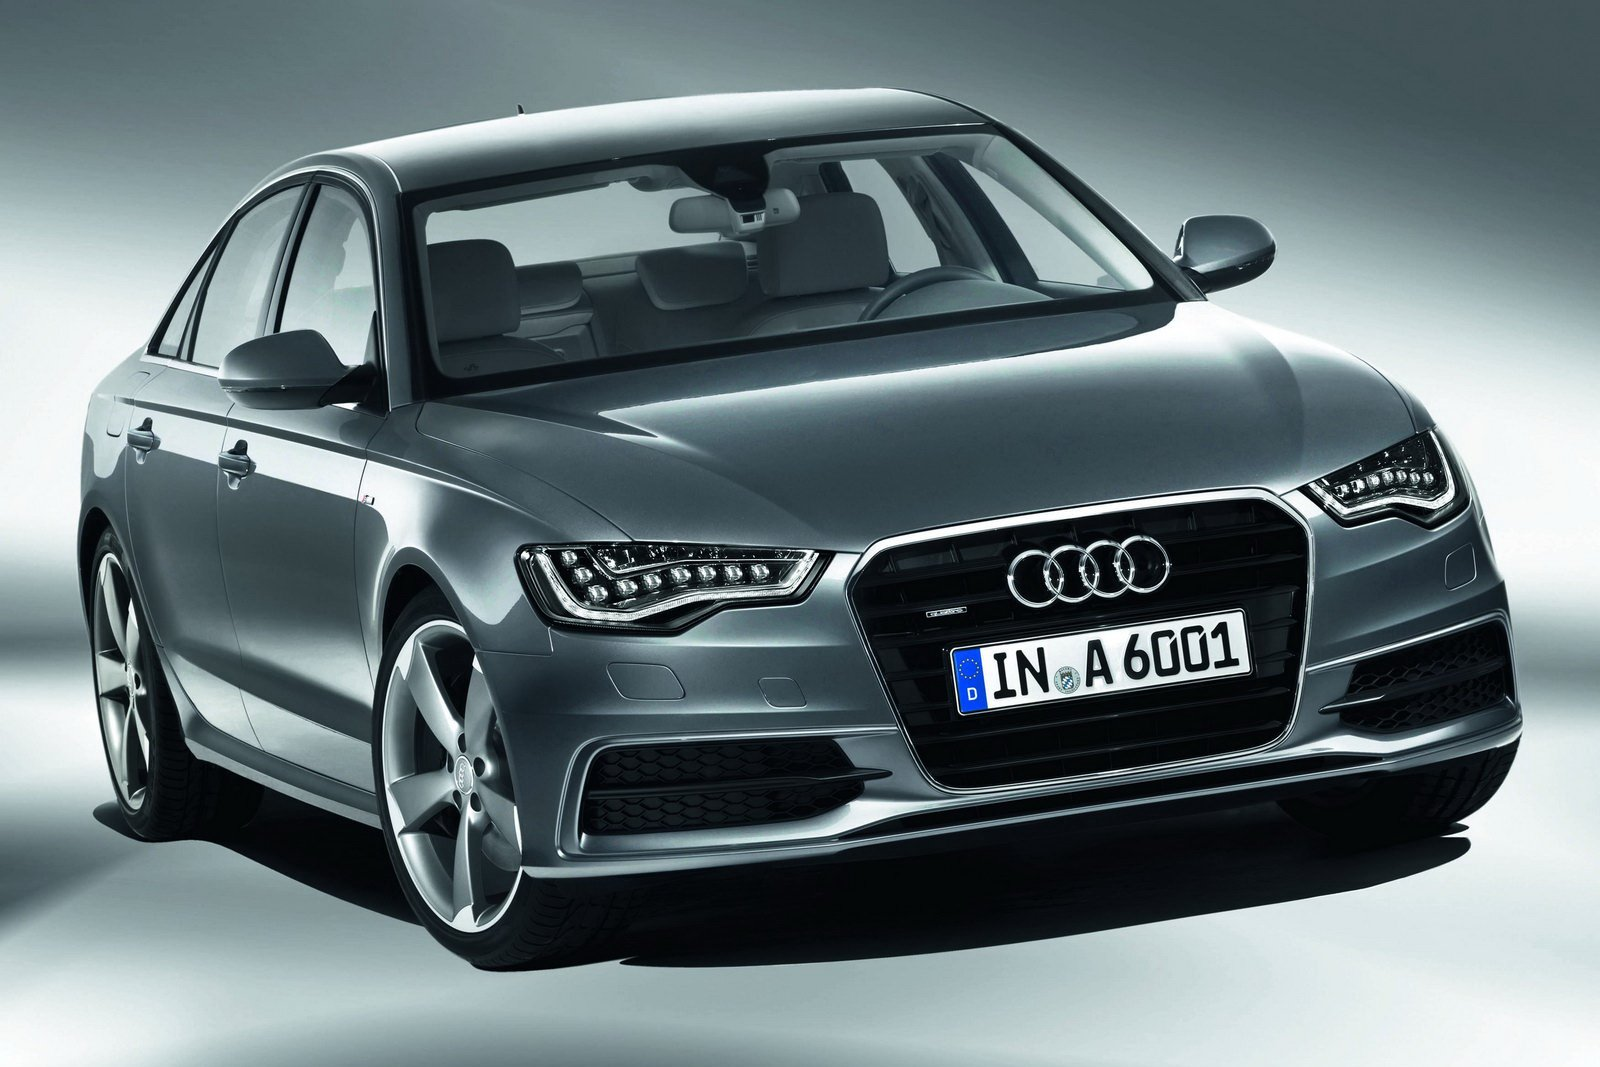 Latest 2012 Audi A6 Official Pictures Leaked Free Download